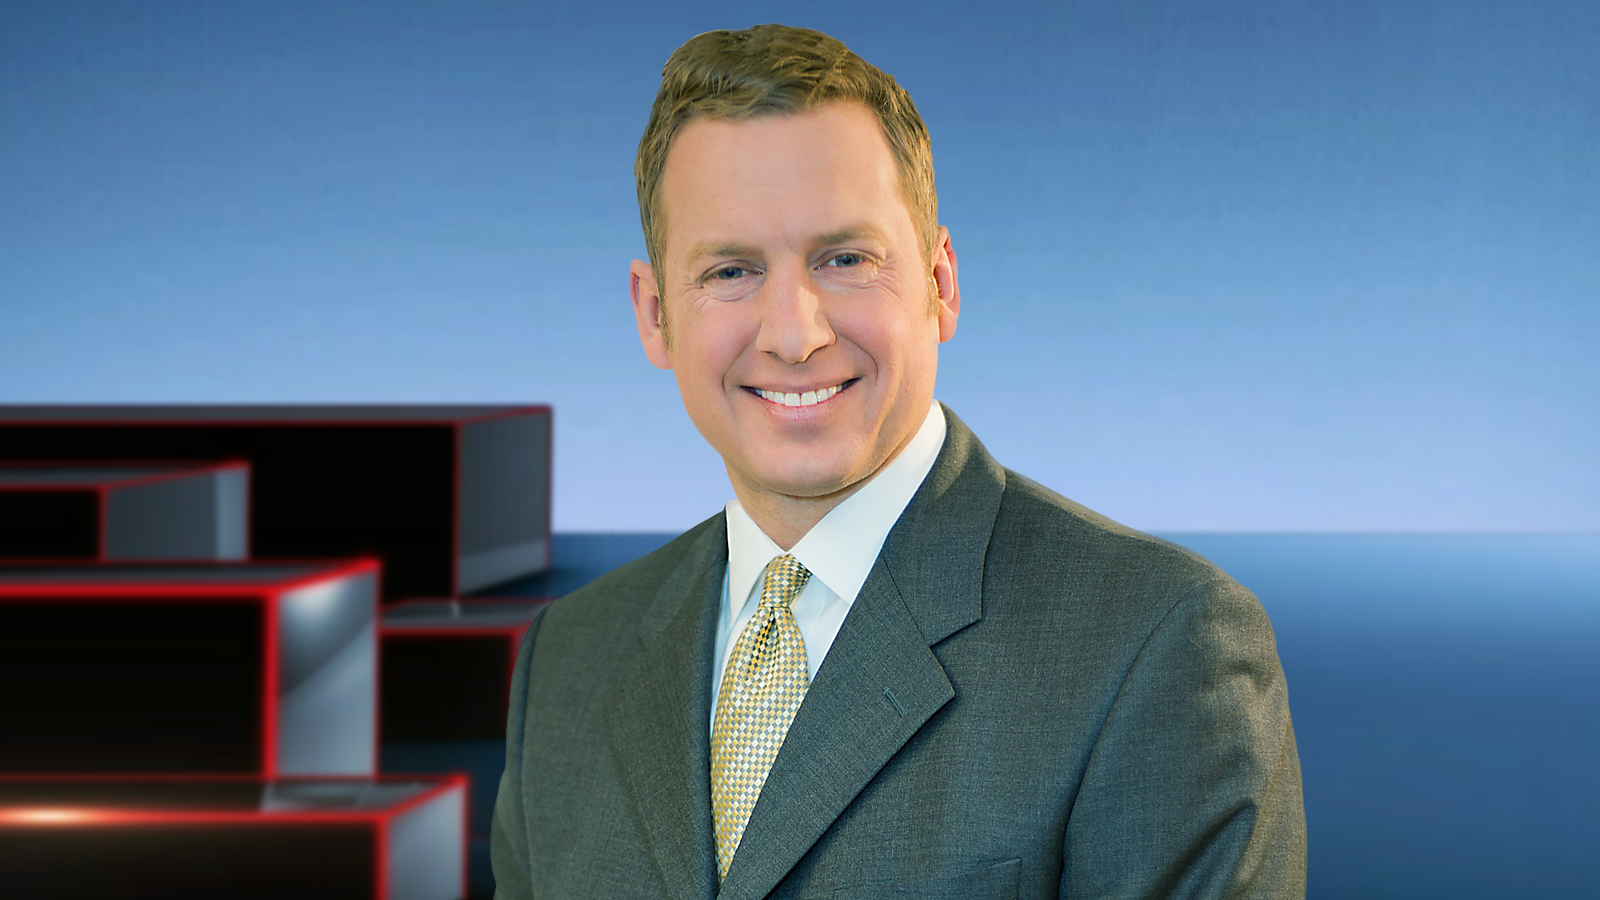 Adam Benigni is moving back to sports at Channel 2. (via WGRZ)